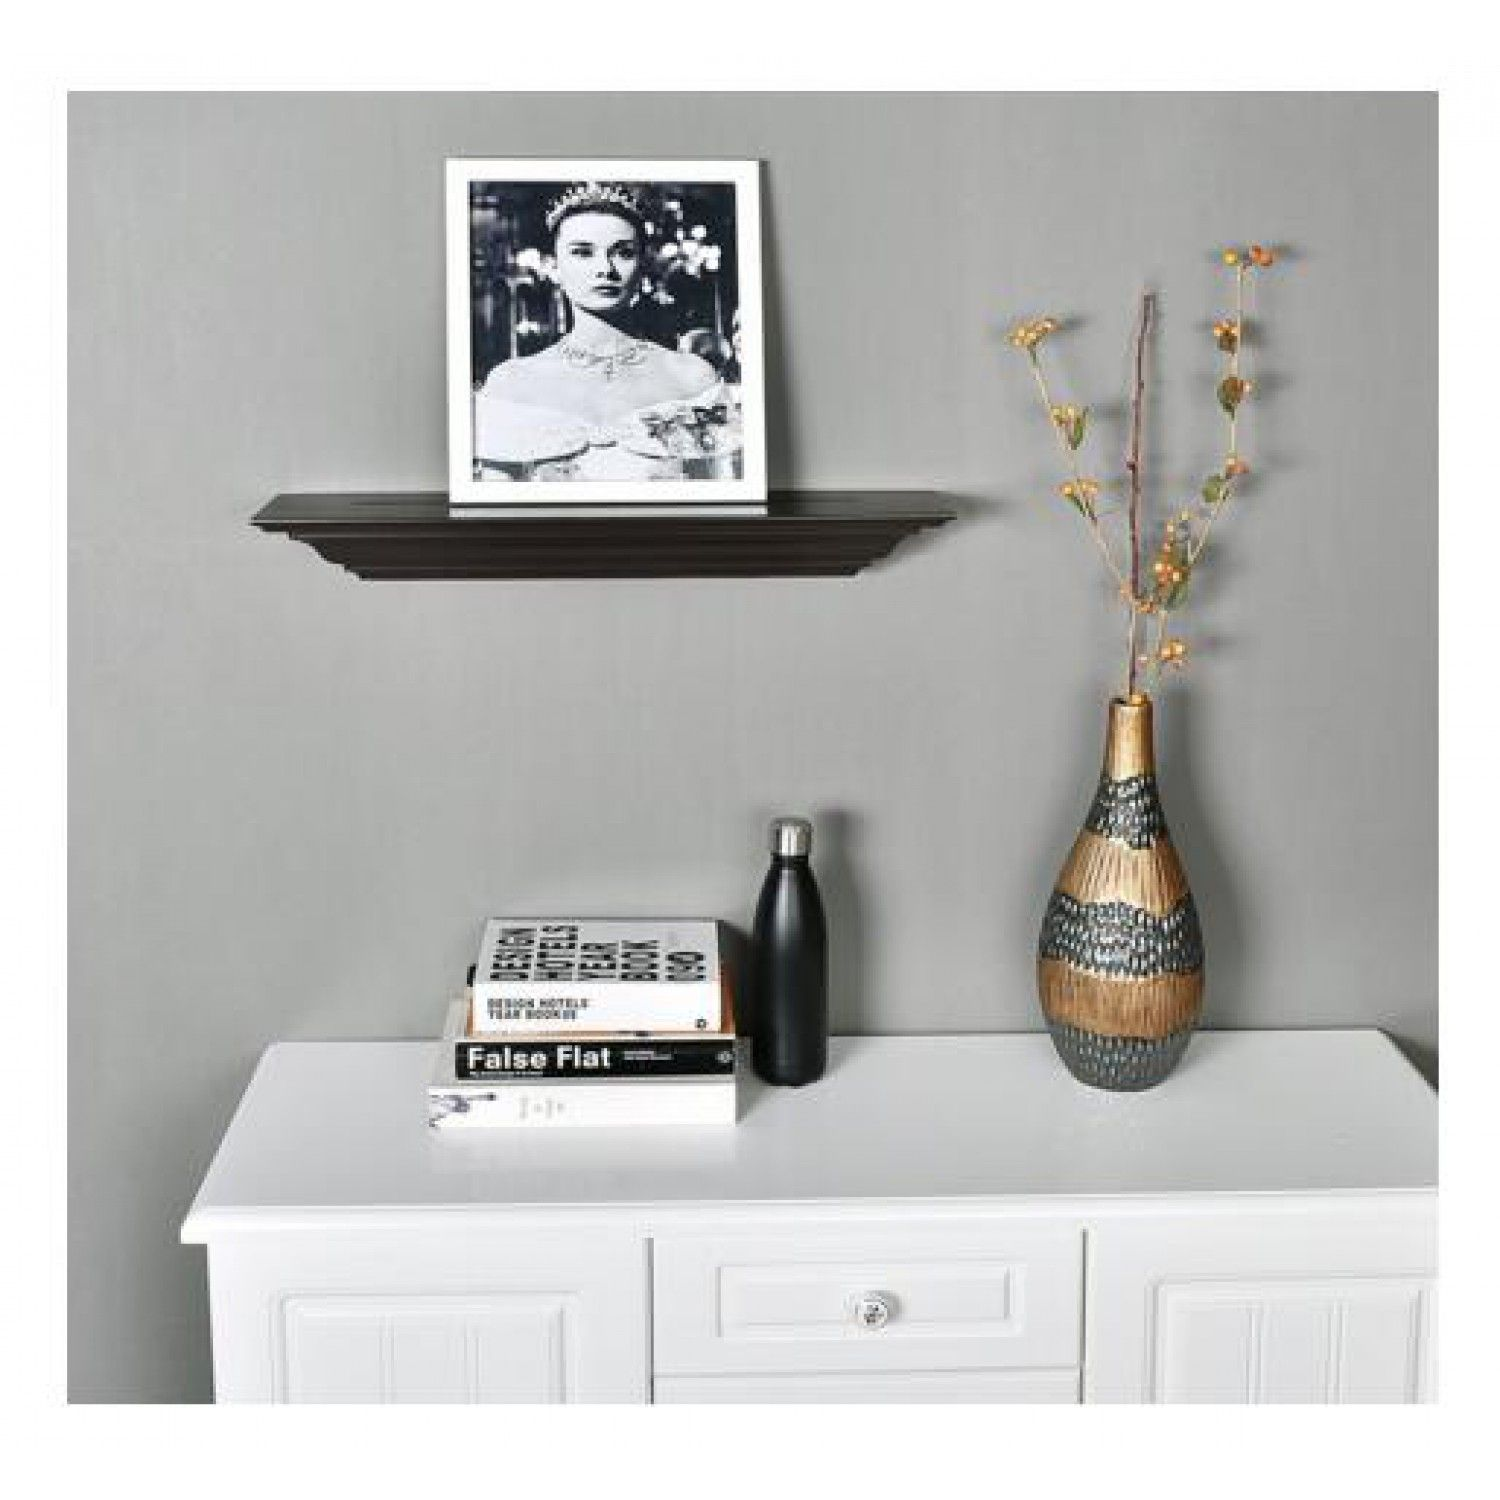 24 Inch Corona Crown Molding Wall Shelf Espresso Color For Us 38 99